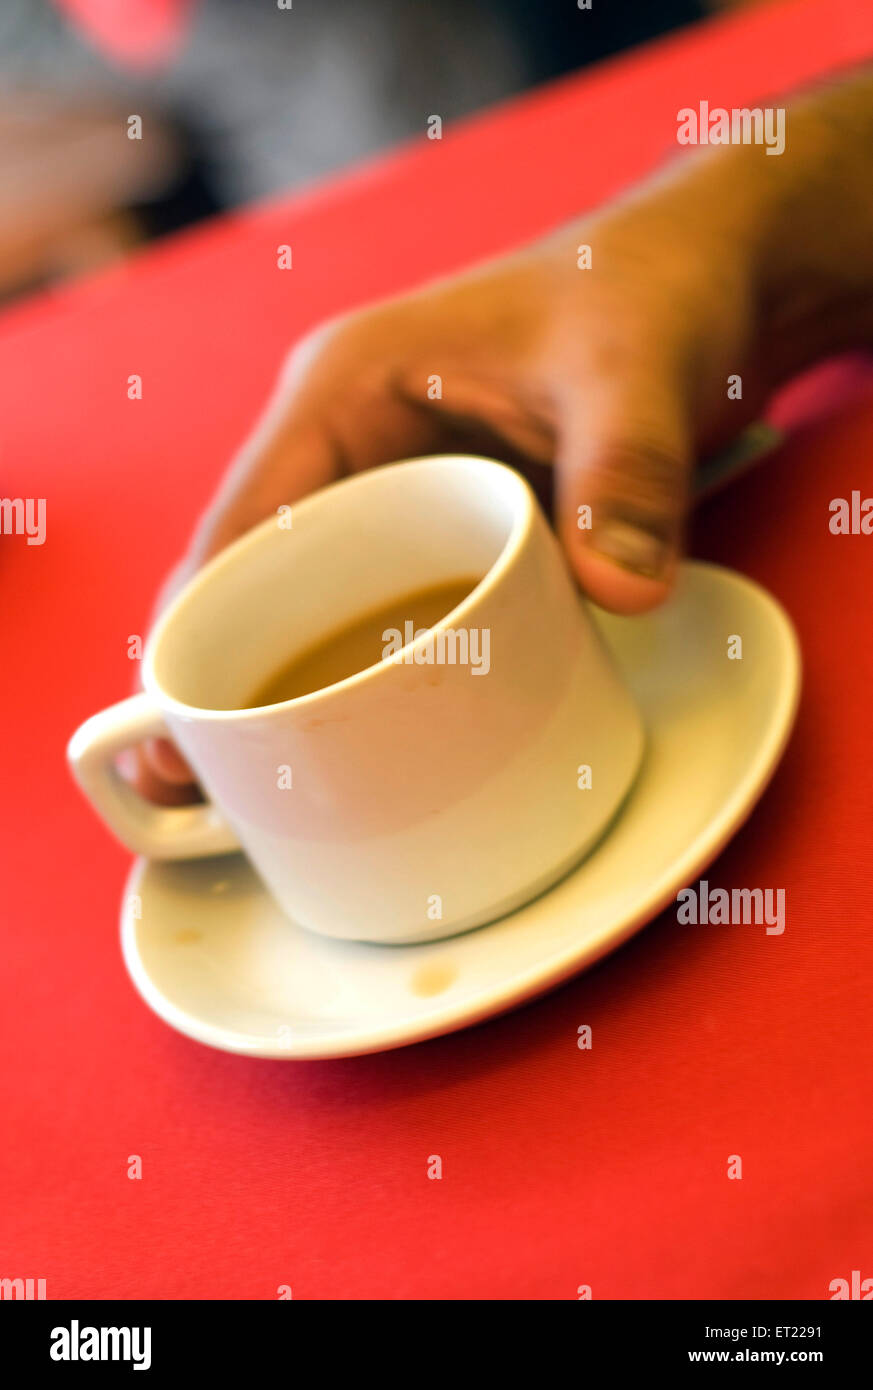 Hand holding white tea cup with saucer on red table ; Goa ; India - Stock Image